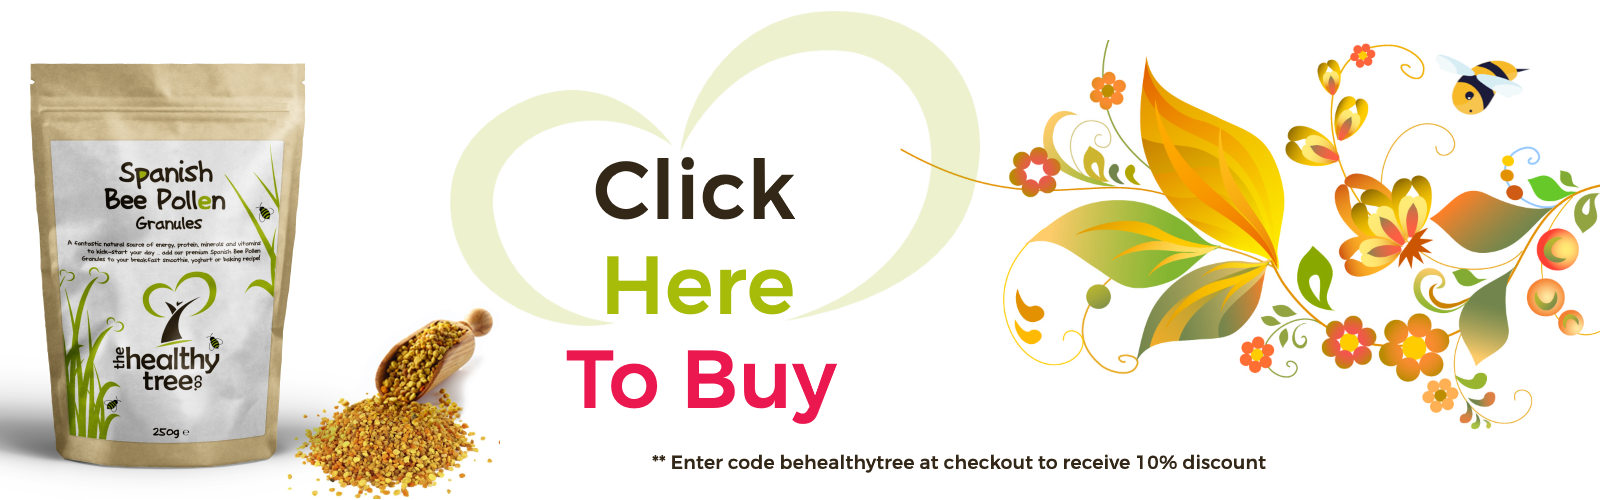 Buy Bee Pollen Online from The Healthy Tree Company